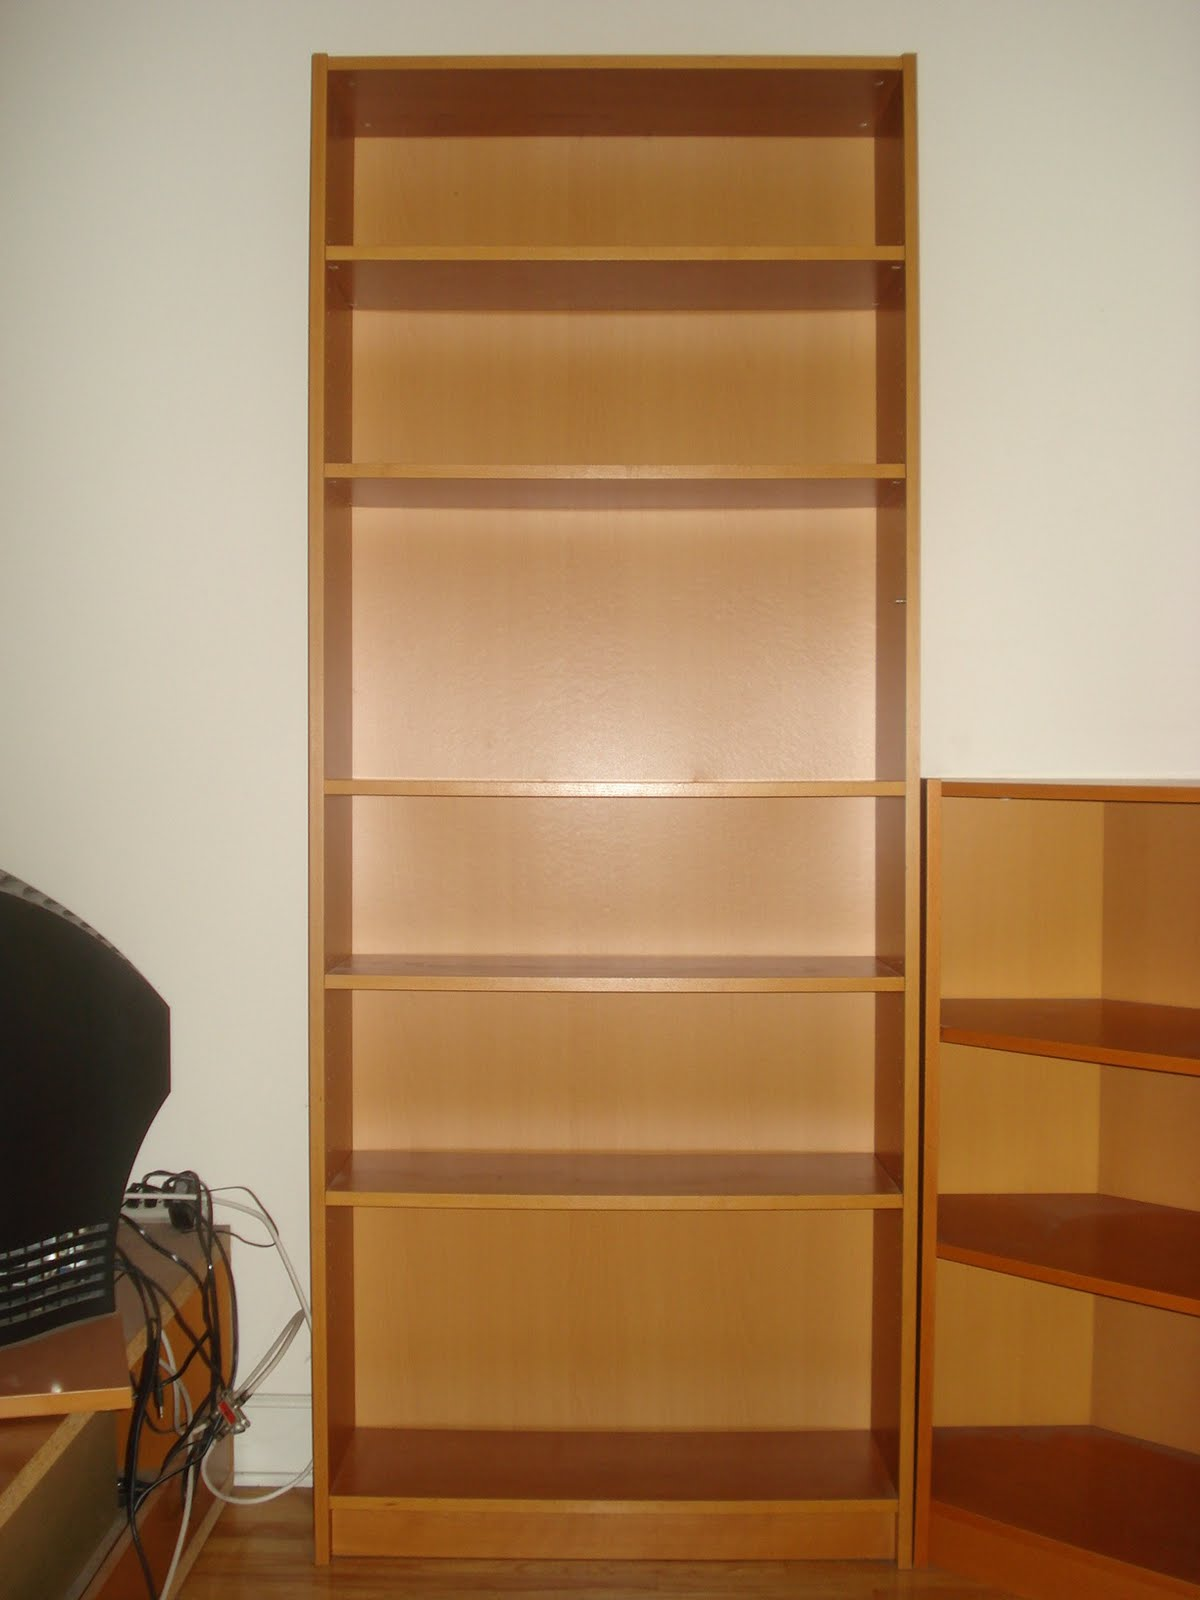 #733C14 Craig's Garage Sale: Ikea Tall Bookcase with 1200x1600 px of Most Effective Ikea Tall Shelf 16001200 wallpaper @ avoidforclosure.info